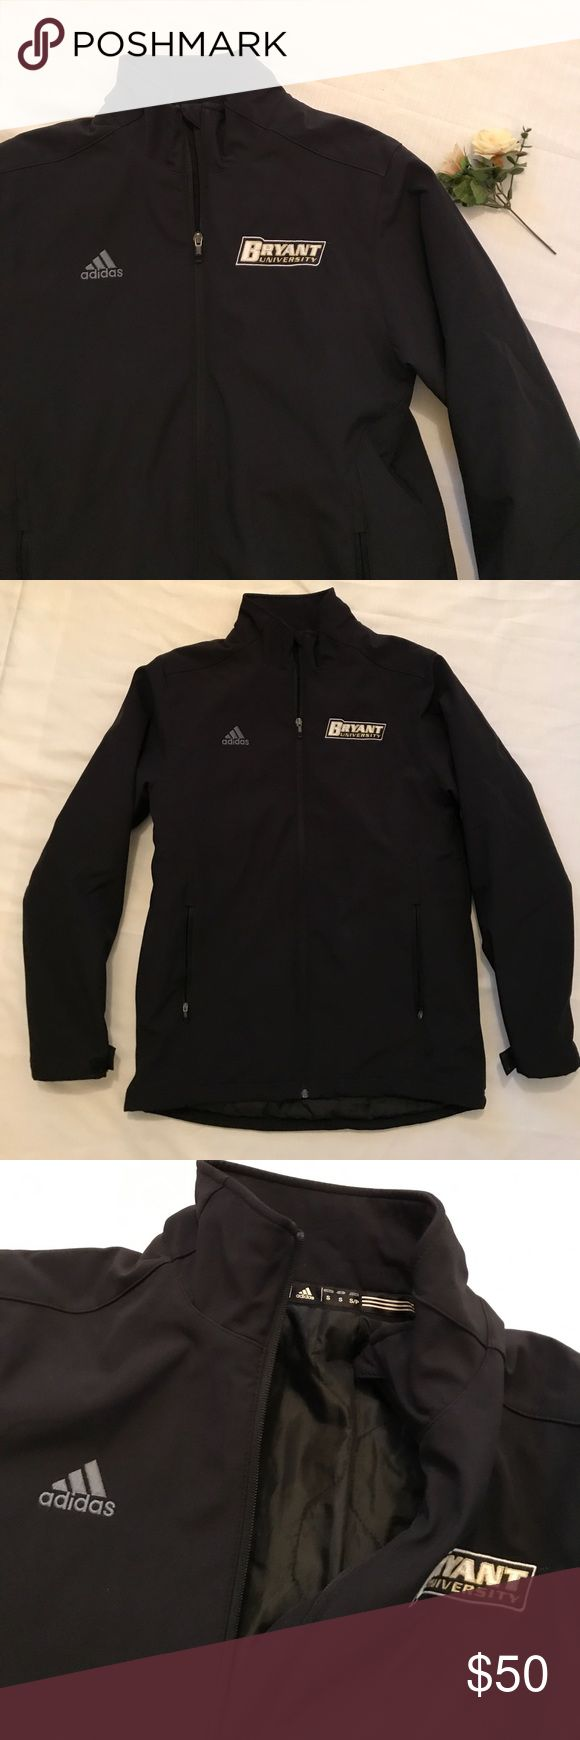 Adidas Cold Weather Jacket Black heavy duty Adidas Jacket with Bryant Logo in the corner. Brand new in excellent condition. Men's Small. adidas Jackets & Coats